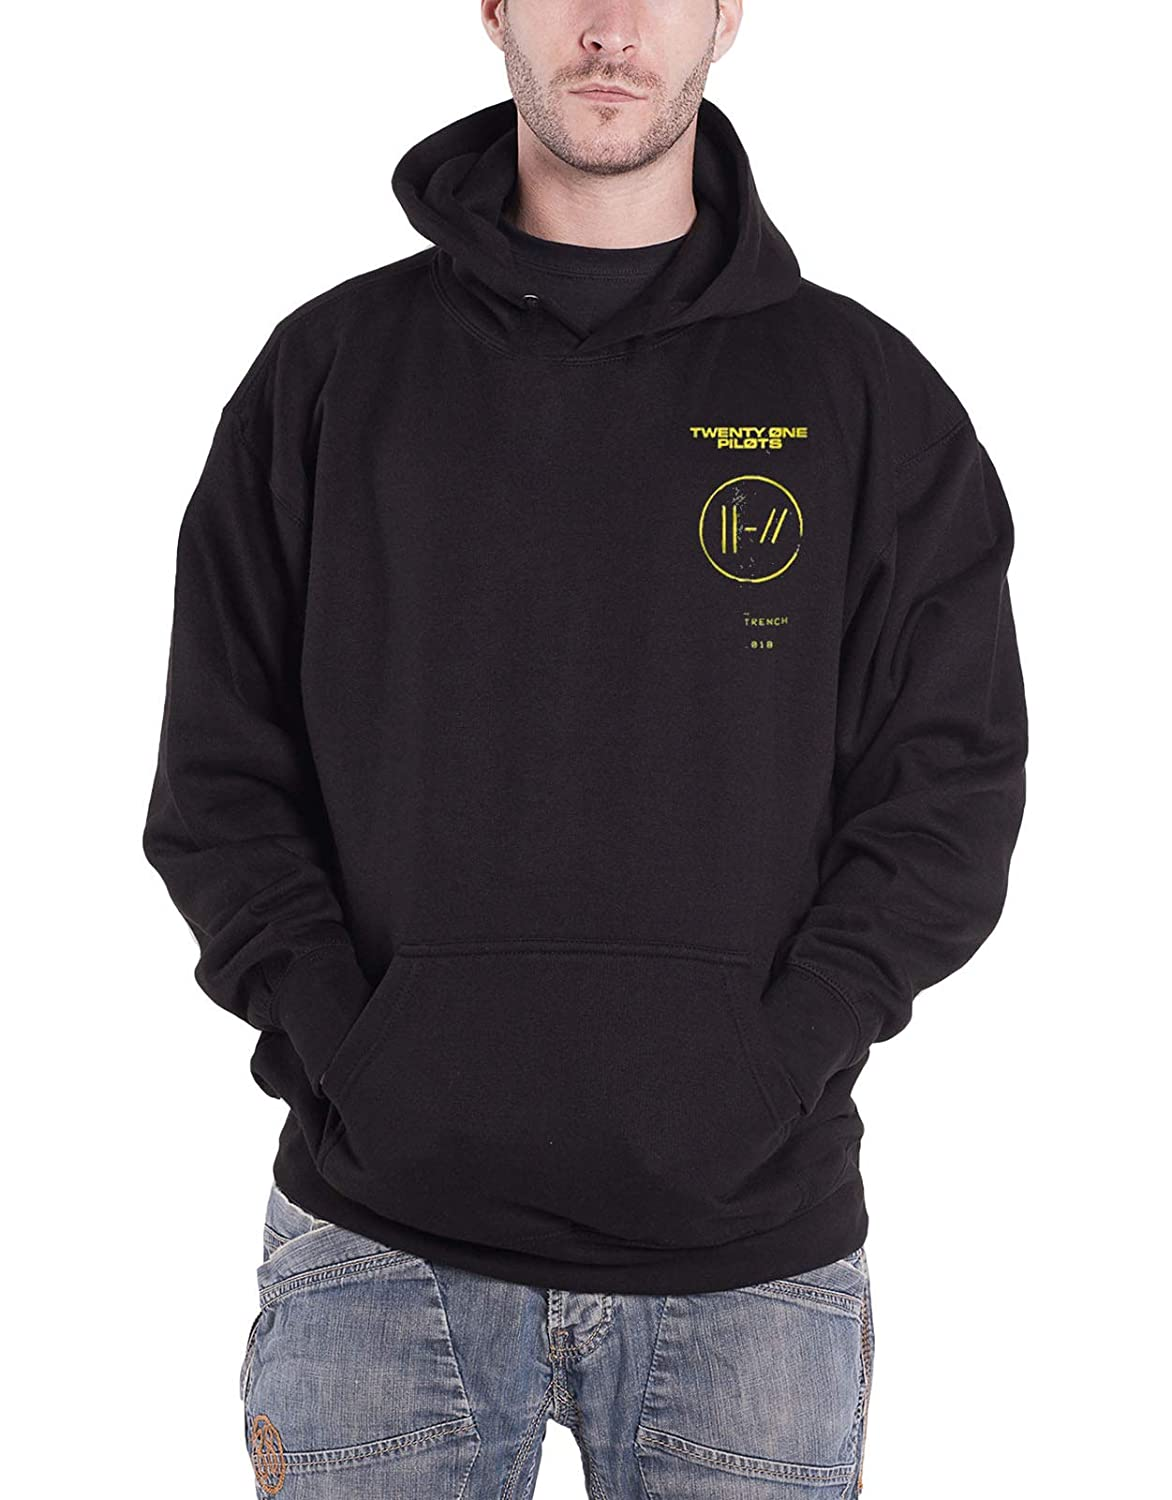 Twenty One Pilots Kapuzenpullover offiziell Trench Title Nue offiziell Herren Twenty One Pilots Merch